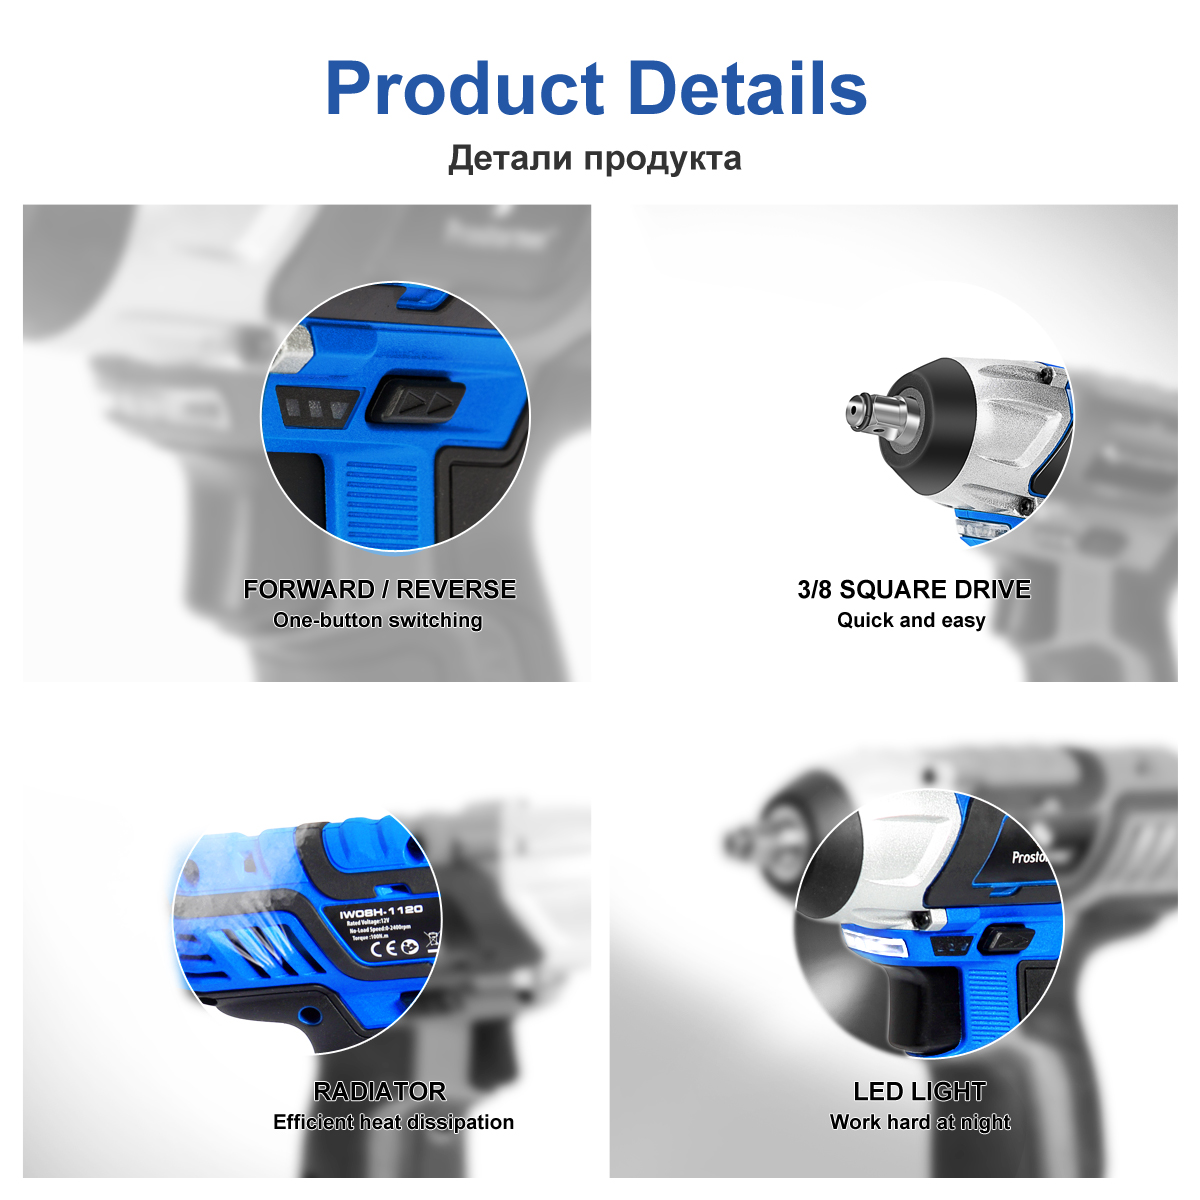 Image 4 - PROSTORMER 12V Electric Wrench 100NM Torque 3/8 inch Cordless Wrench 2000mAh Lithium Rechargeable Battery Car Repair Power Tool-in Electric Wrenches from Tools on